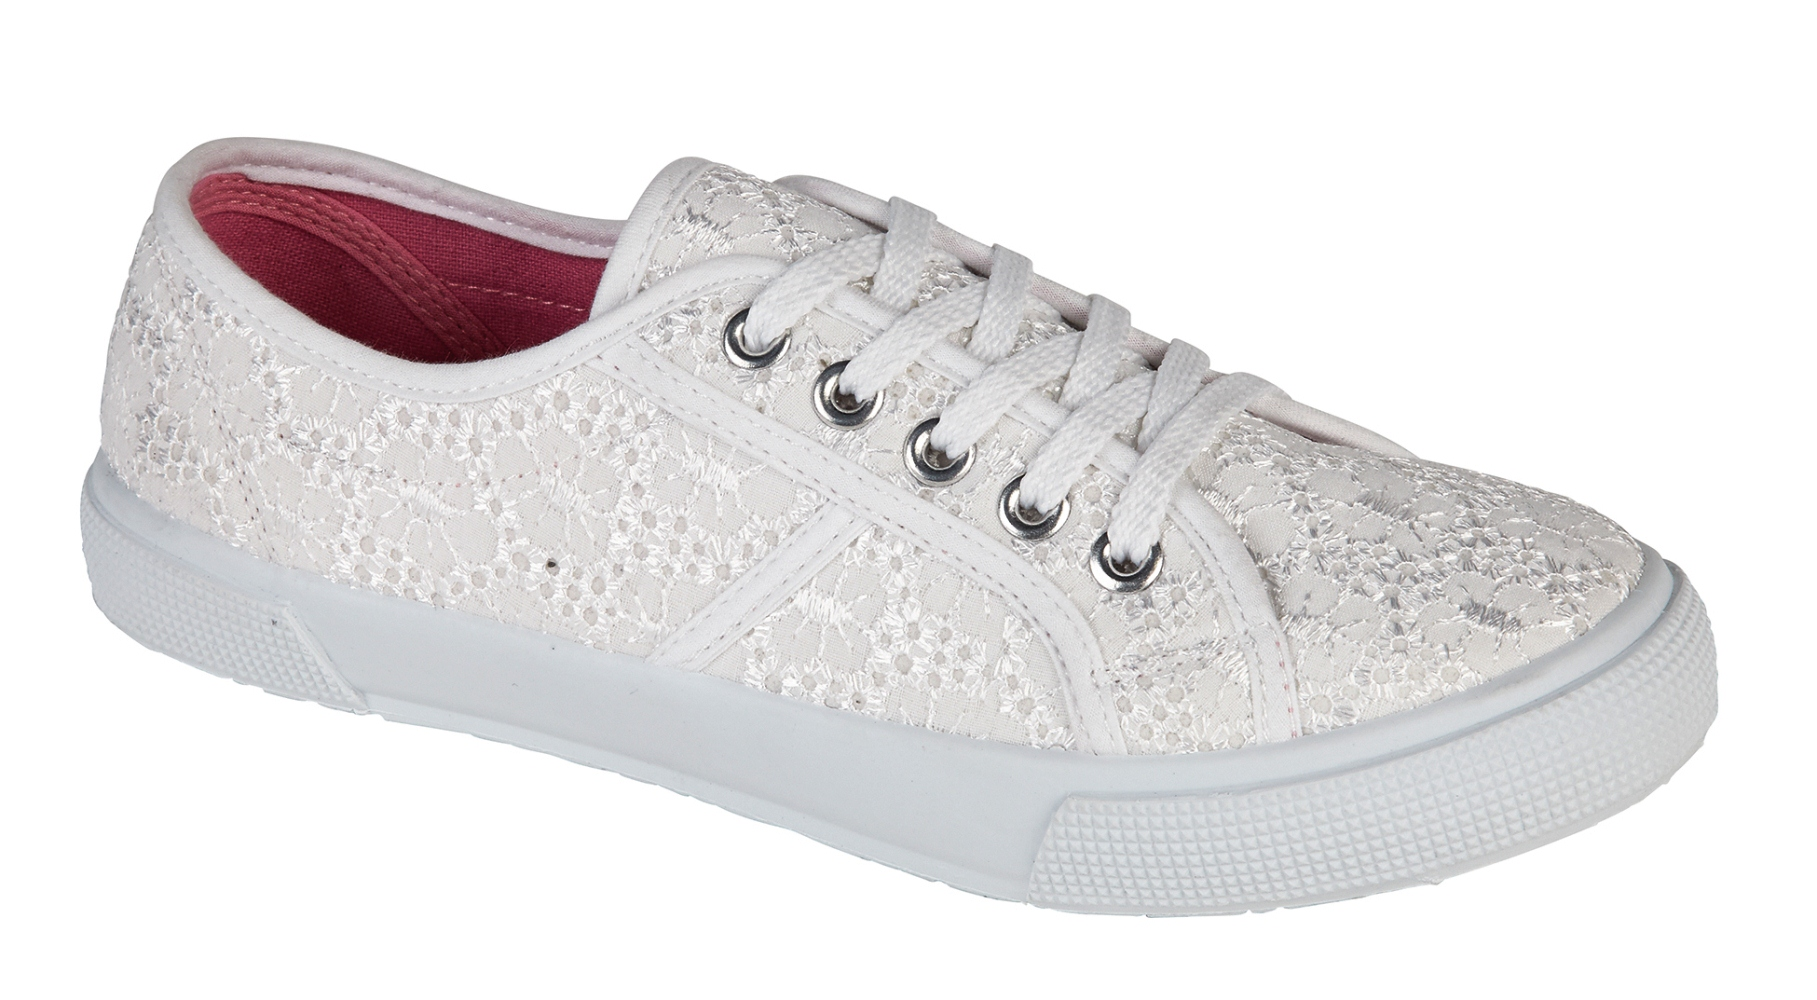 These lightweight, flexible bottom Veda Print Canvas Lace-Up Shoes feature an anatomically contoured footbed with exceptional support. Part of the Dansko Sanibel Collection, the Veda Print Canvas Lace-Up Shoes are part sneaker, part clog, in a light canvas design with lace-up styling.